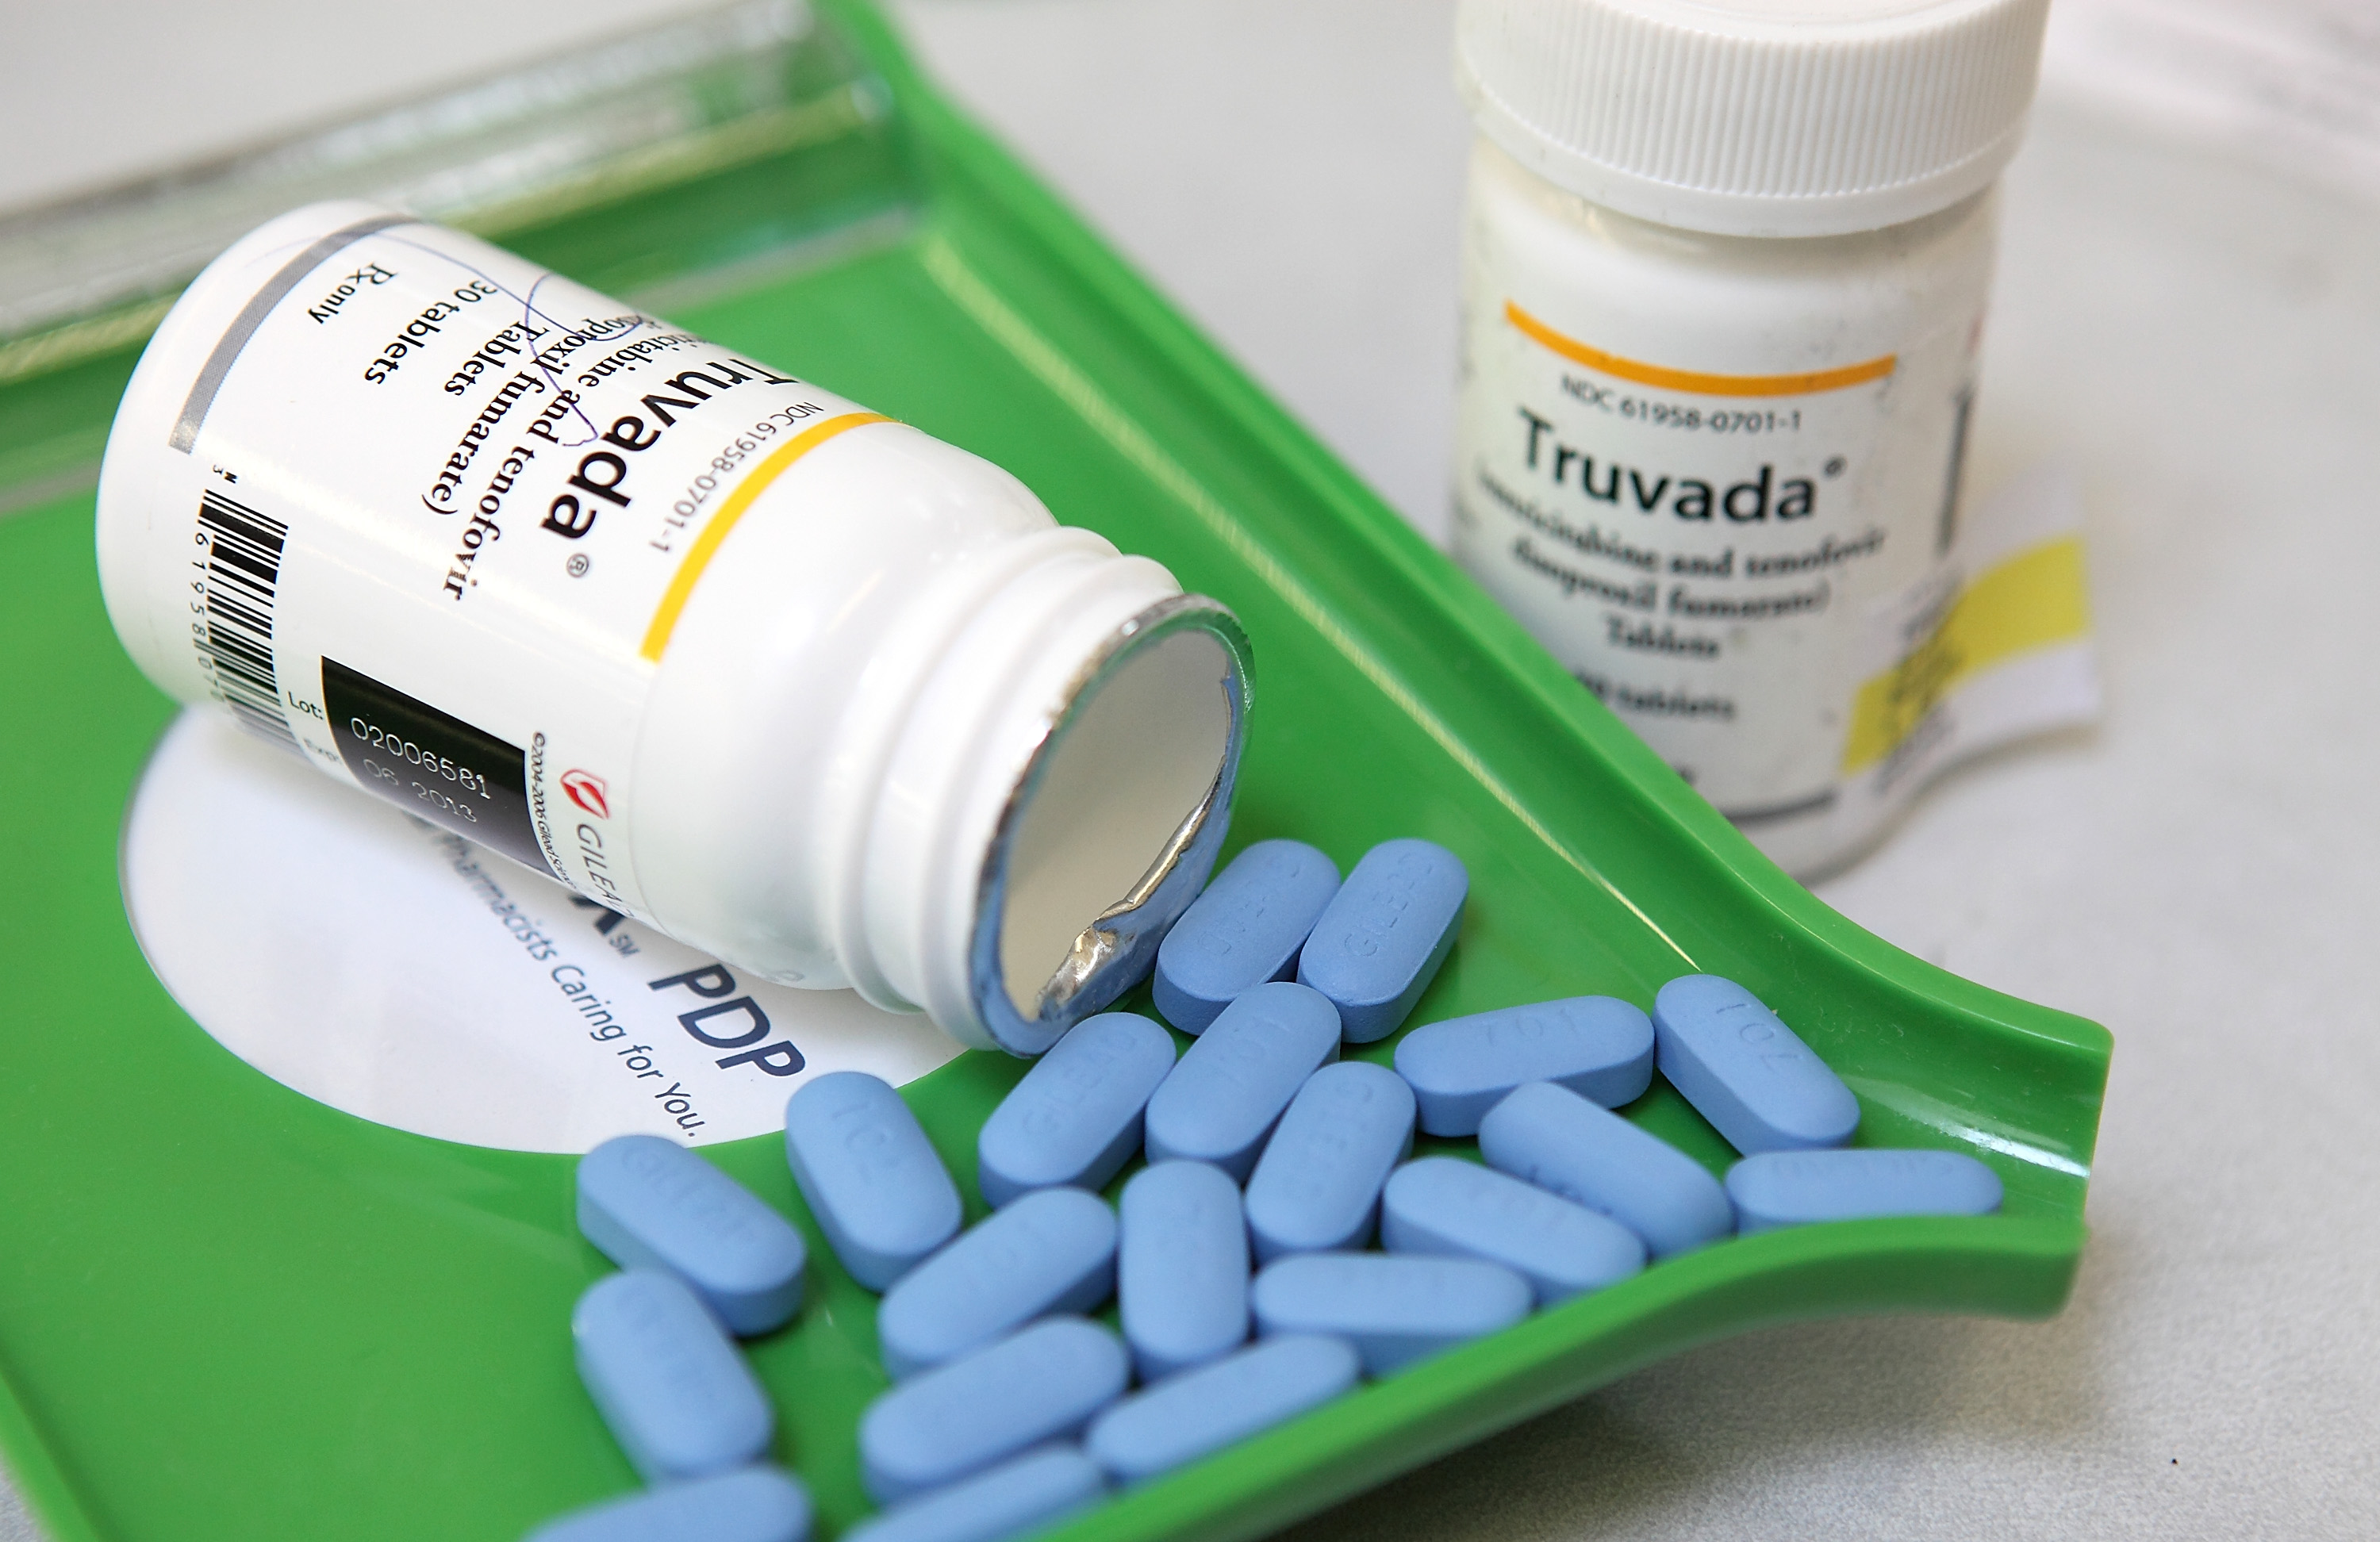 People With Hepatitis B Can Safely Use Truvada PrEP for HIV Prevention